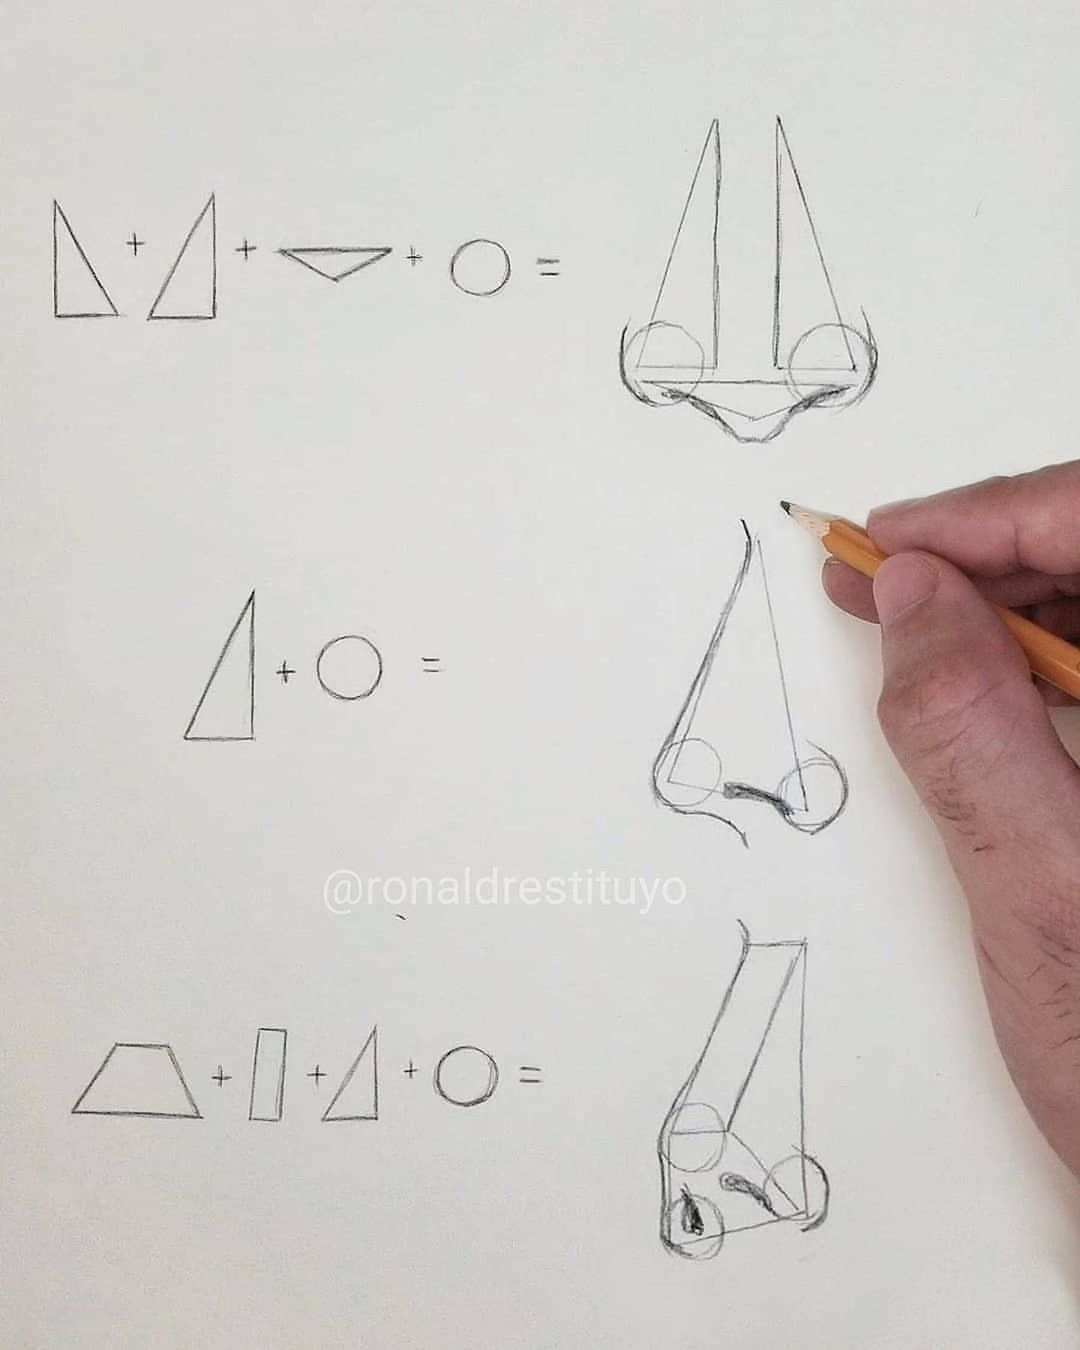 Art Daily On Instagram How To Comment Nose In Different Languages Great Art By Ronald Restitu In 2020 Nose Drawing Portrait Drawing Drawing Tutorial Face